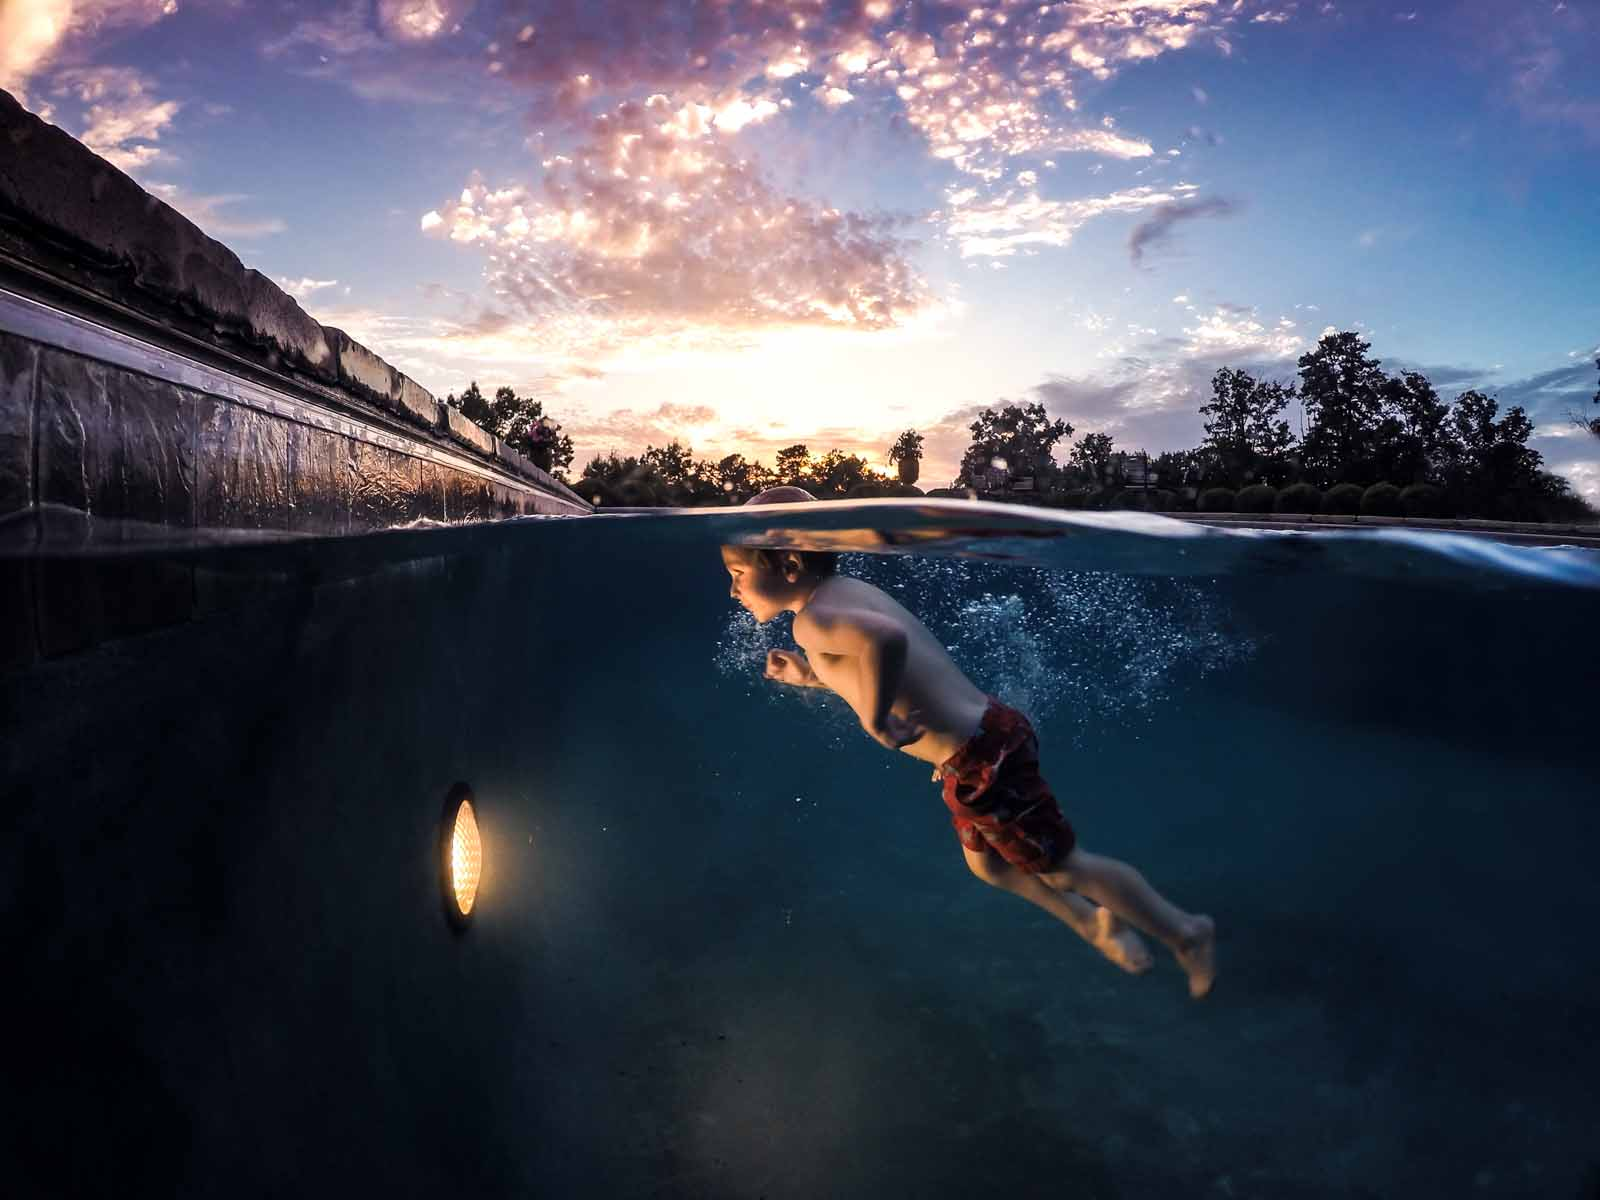 Night photography underwater image of boy swimming in pool